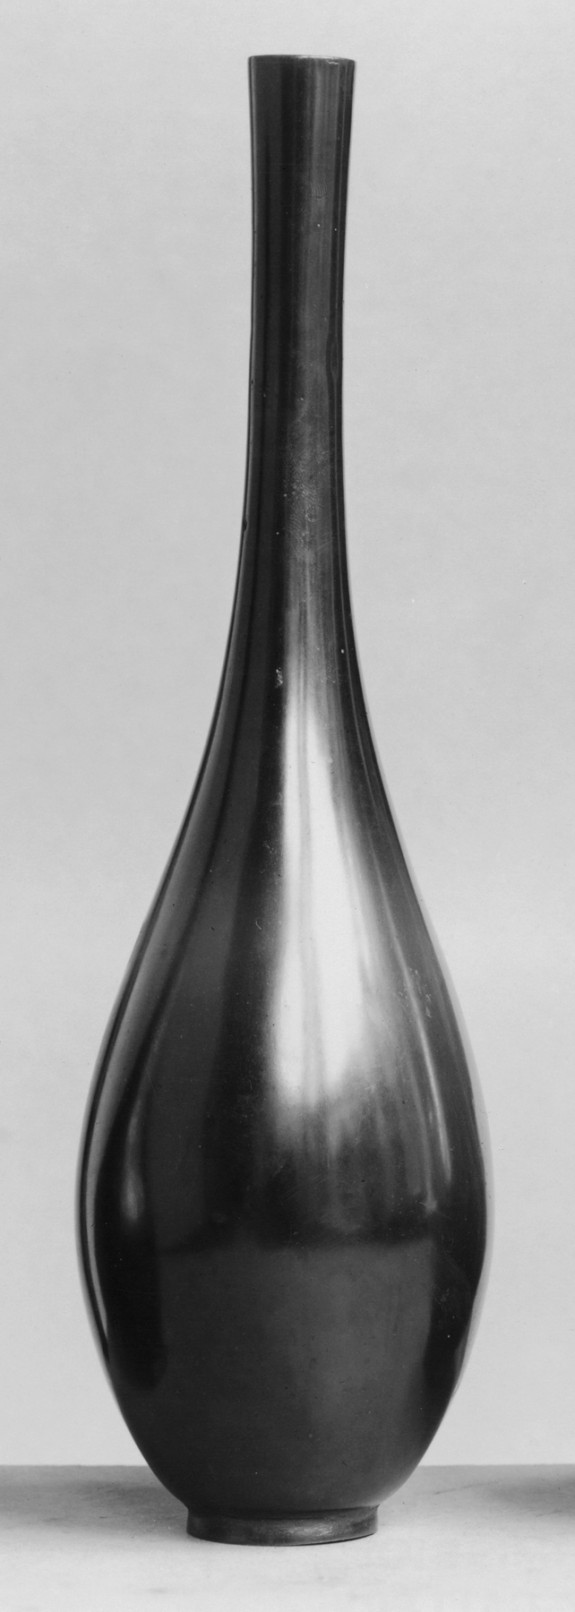 Oviform Bottle with a Long Neck